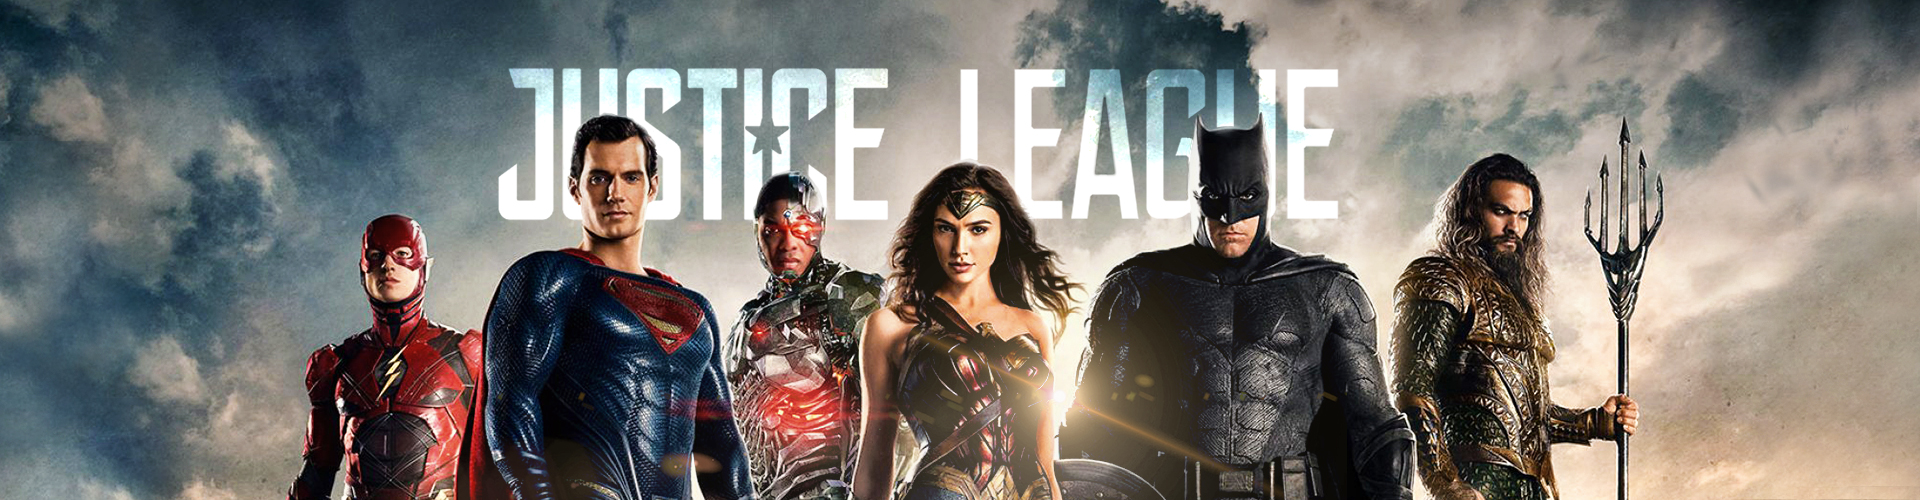 Dvd-it_slider_JusticeLegue